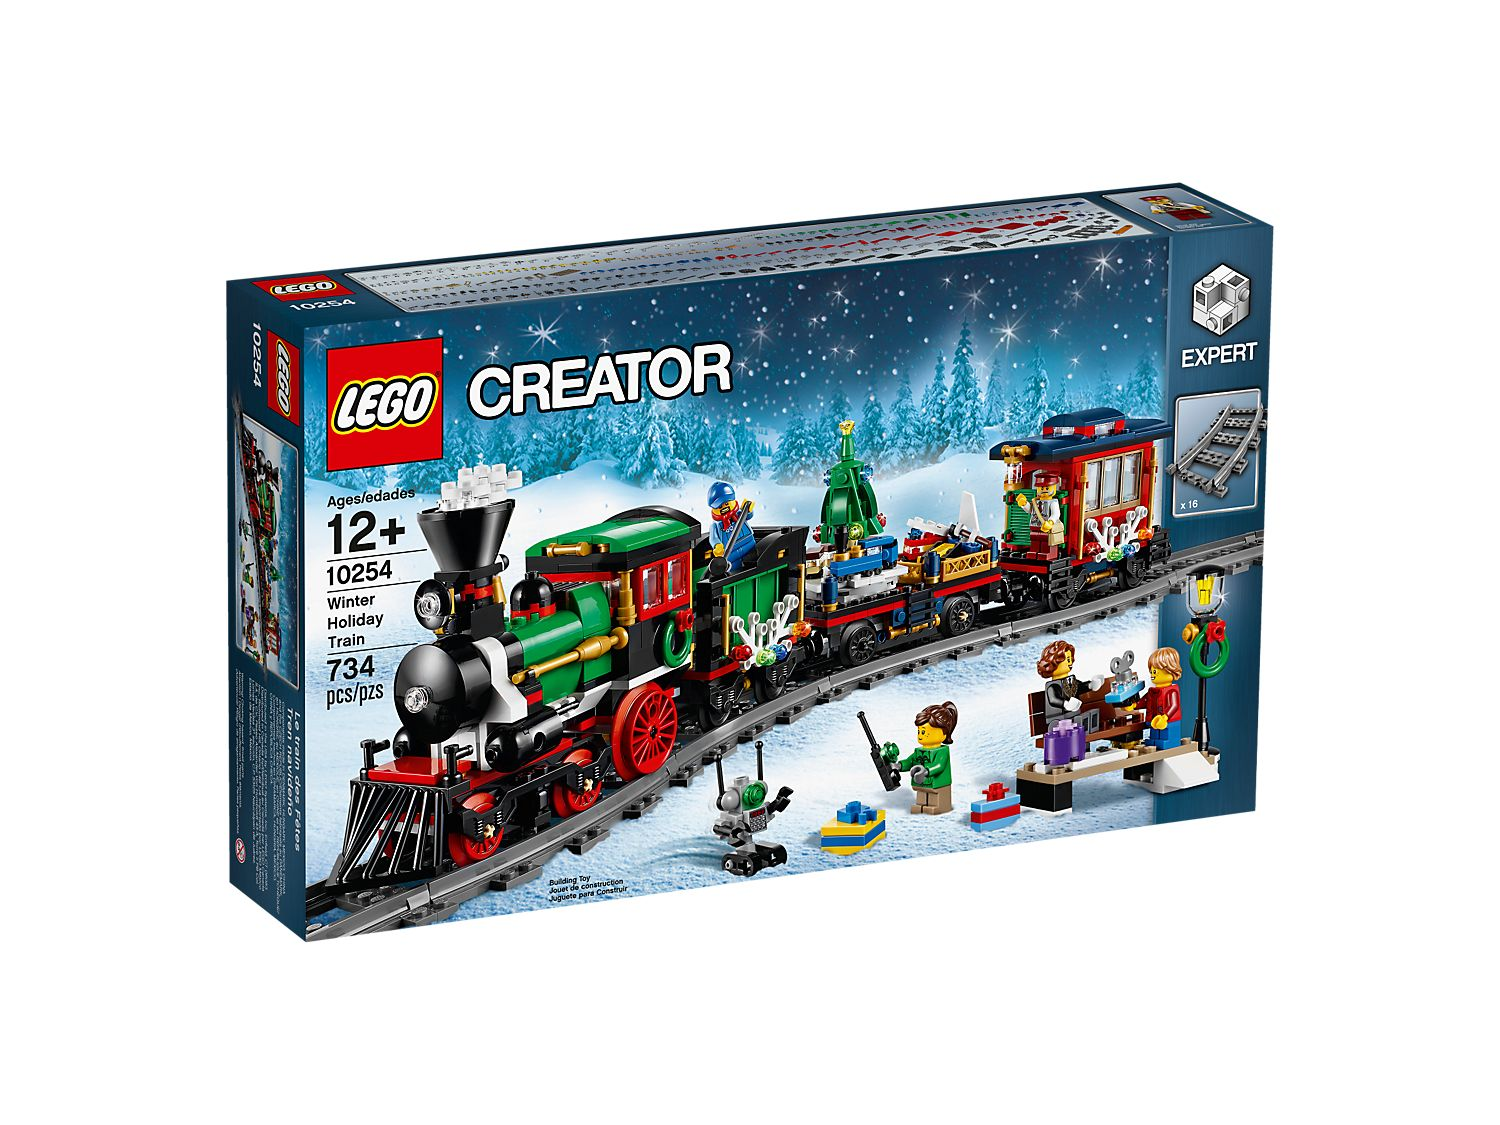 Lego Christmas Train.Winter Holiday Train 10254 Creator Expert Buy Online At The Official Lego Shop Us